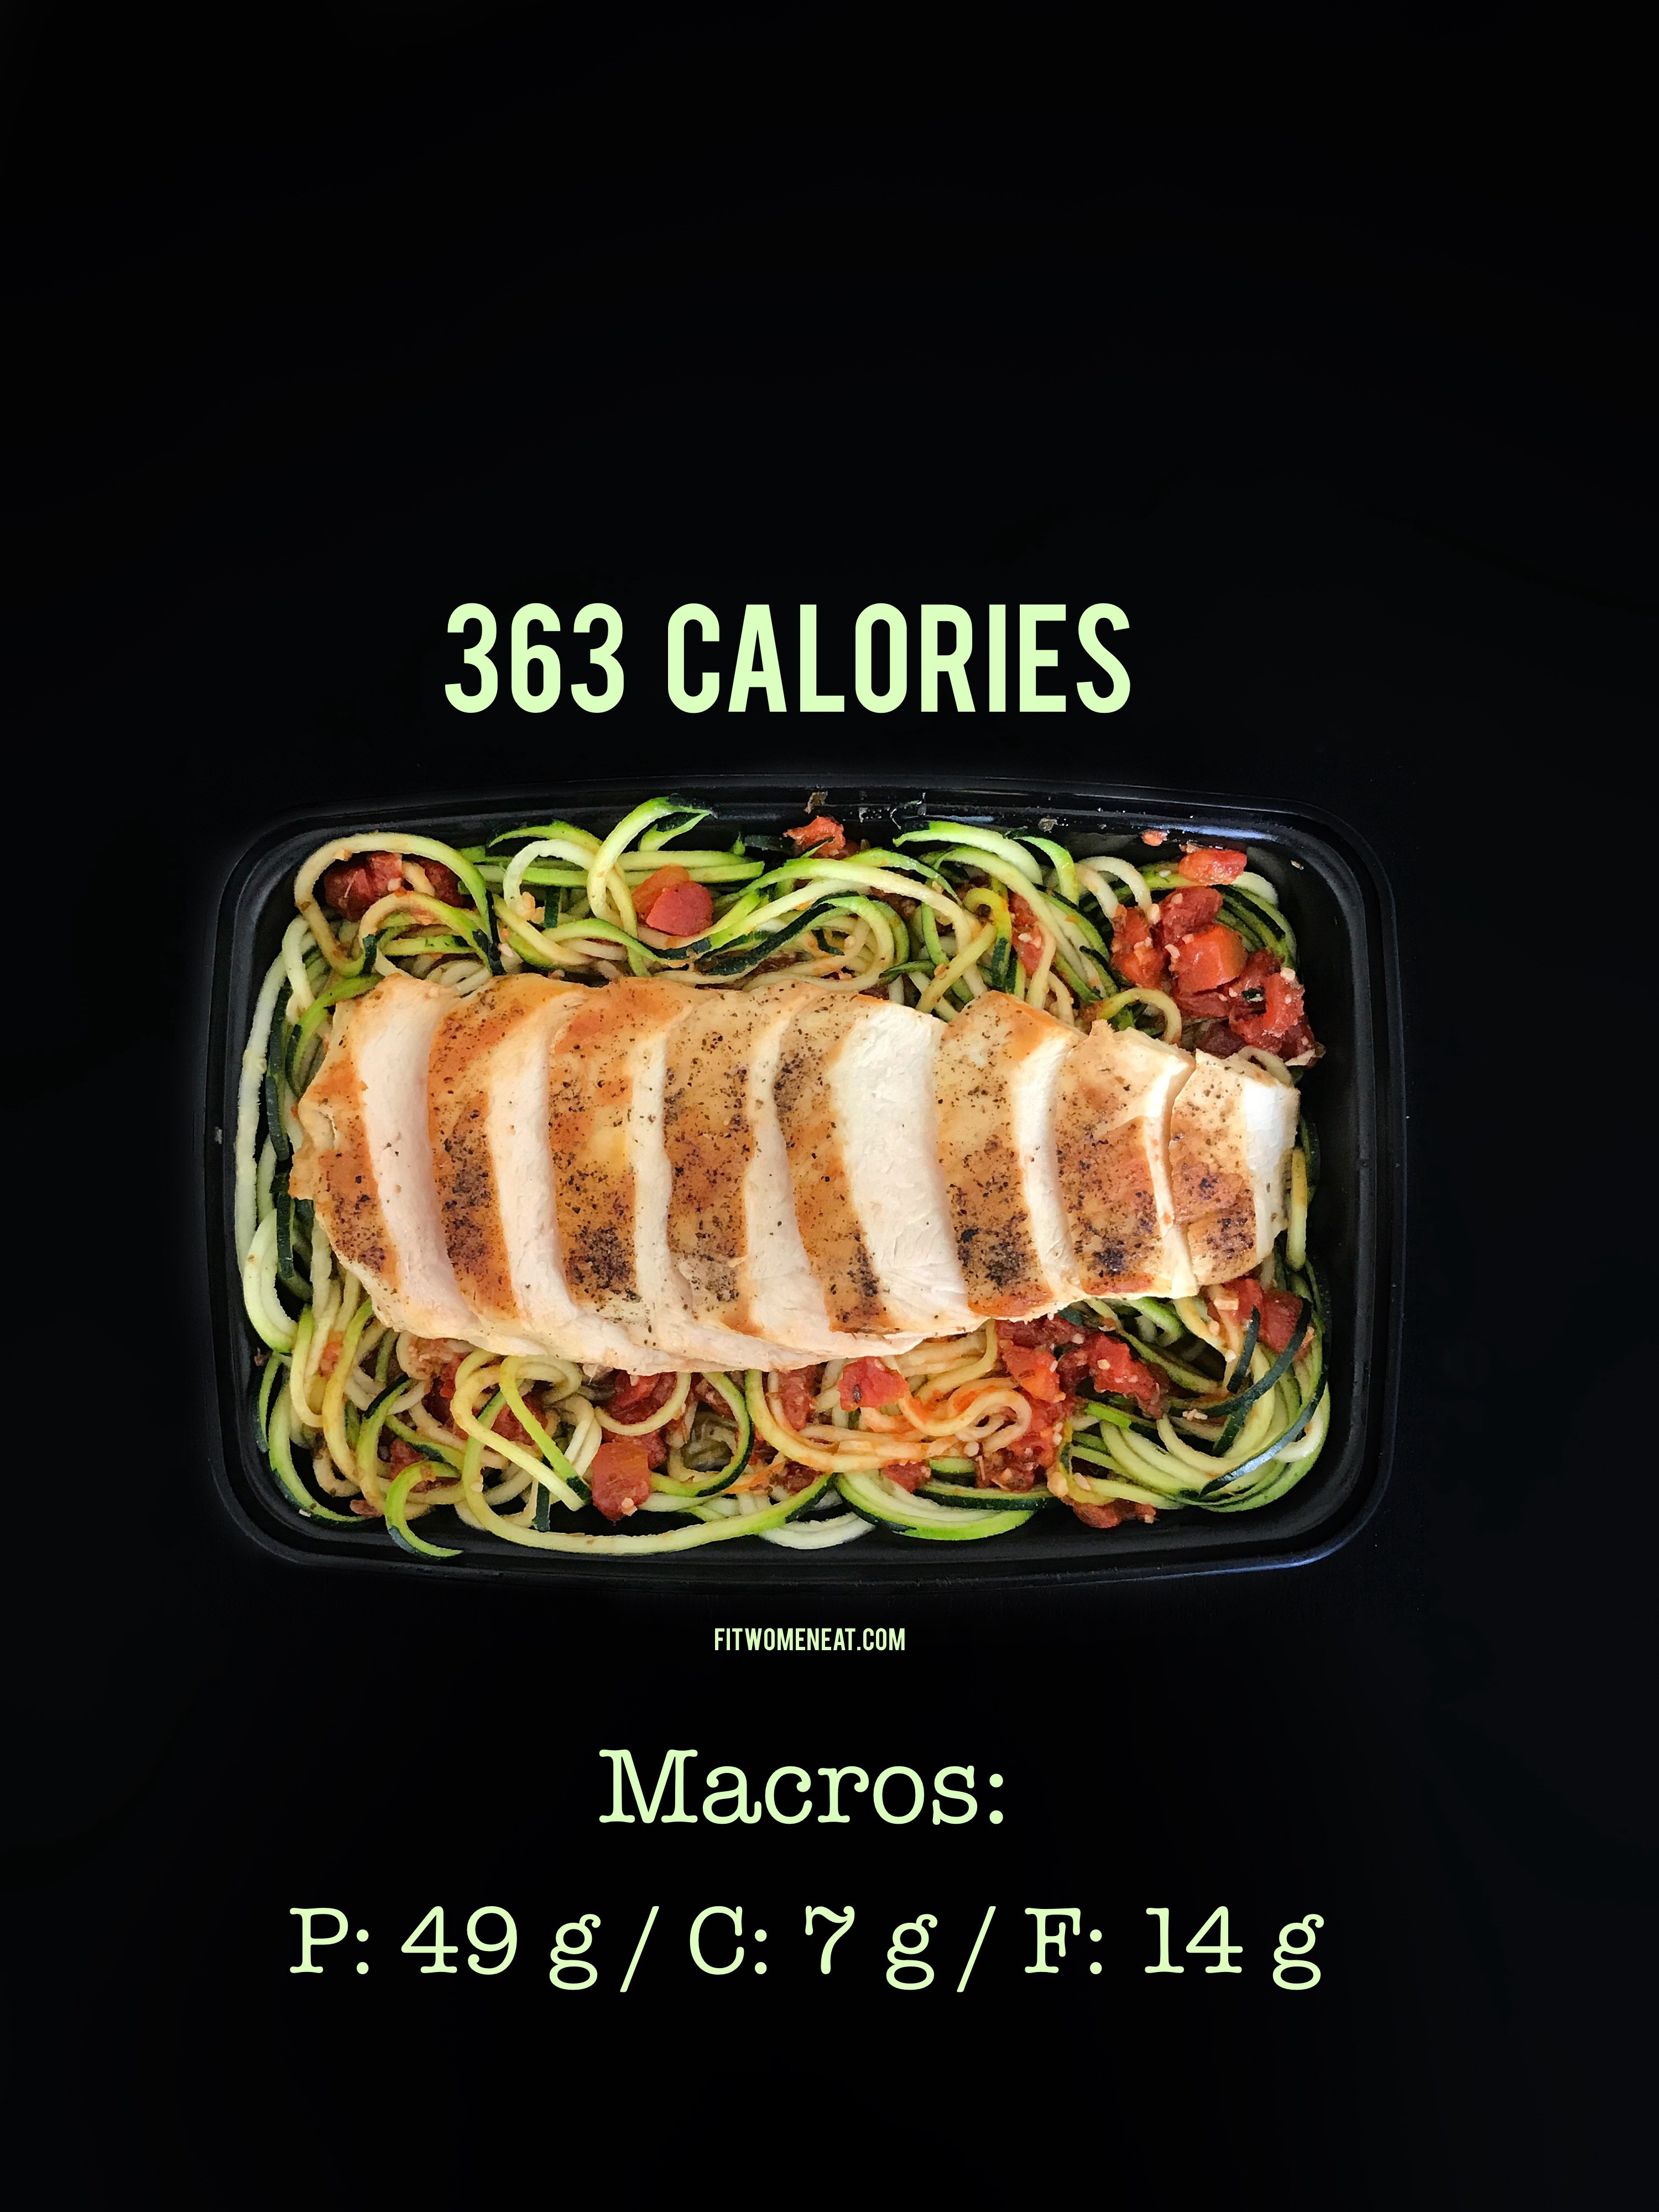 Macros For Chicken Breast : macros, chicken, breast, Zoodles, Tomato, Oregano, Sauce, Grilled, Chicken, Breast, Women